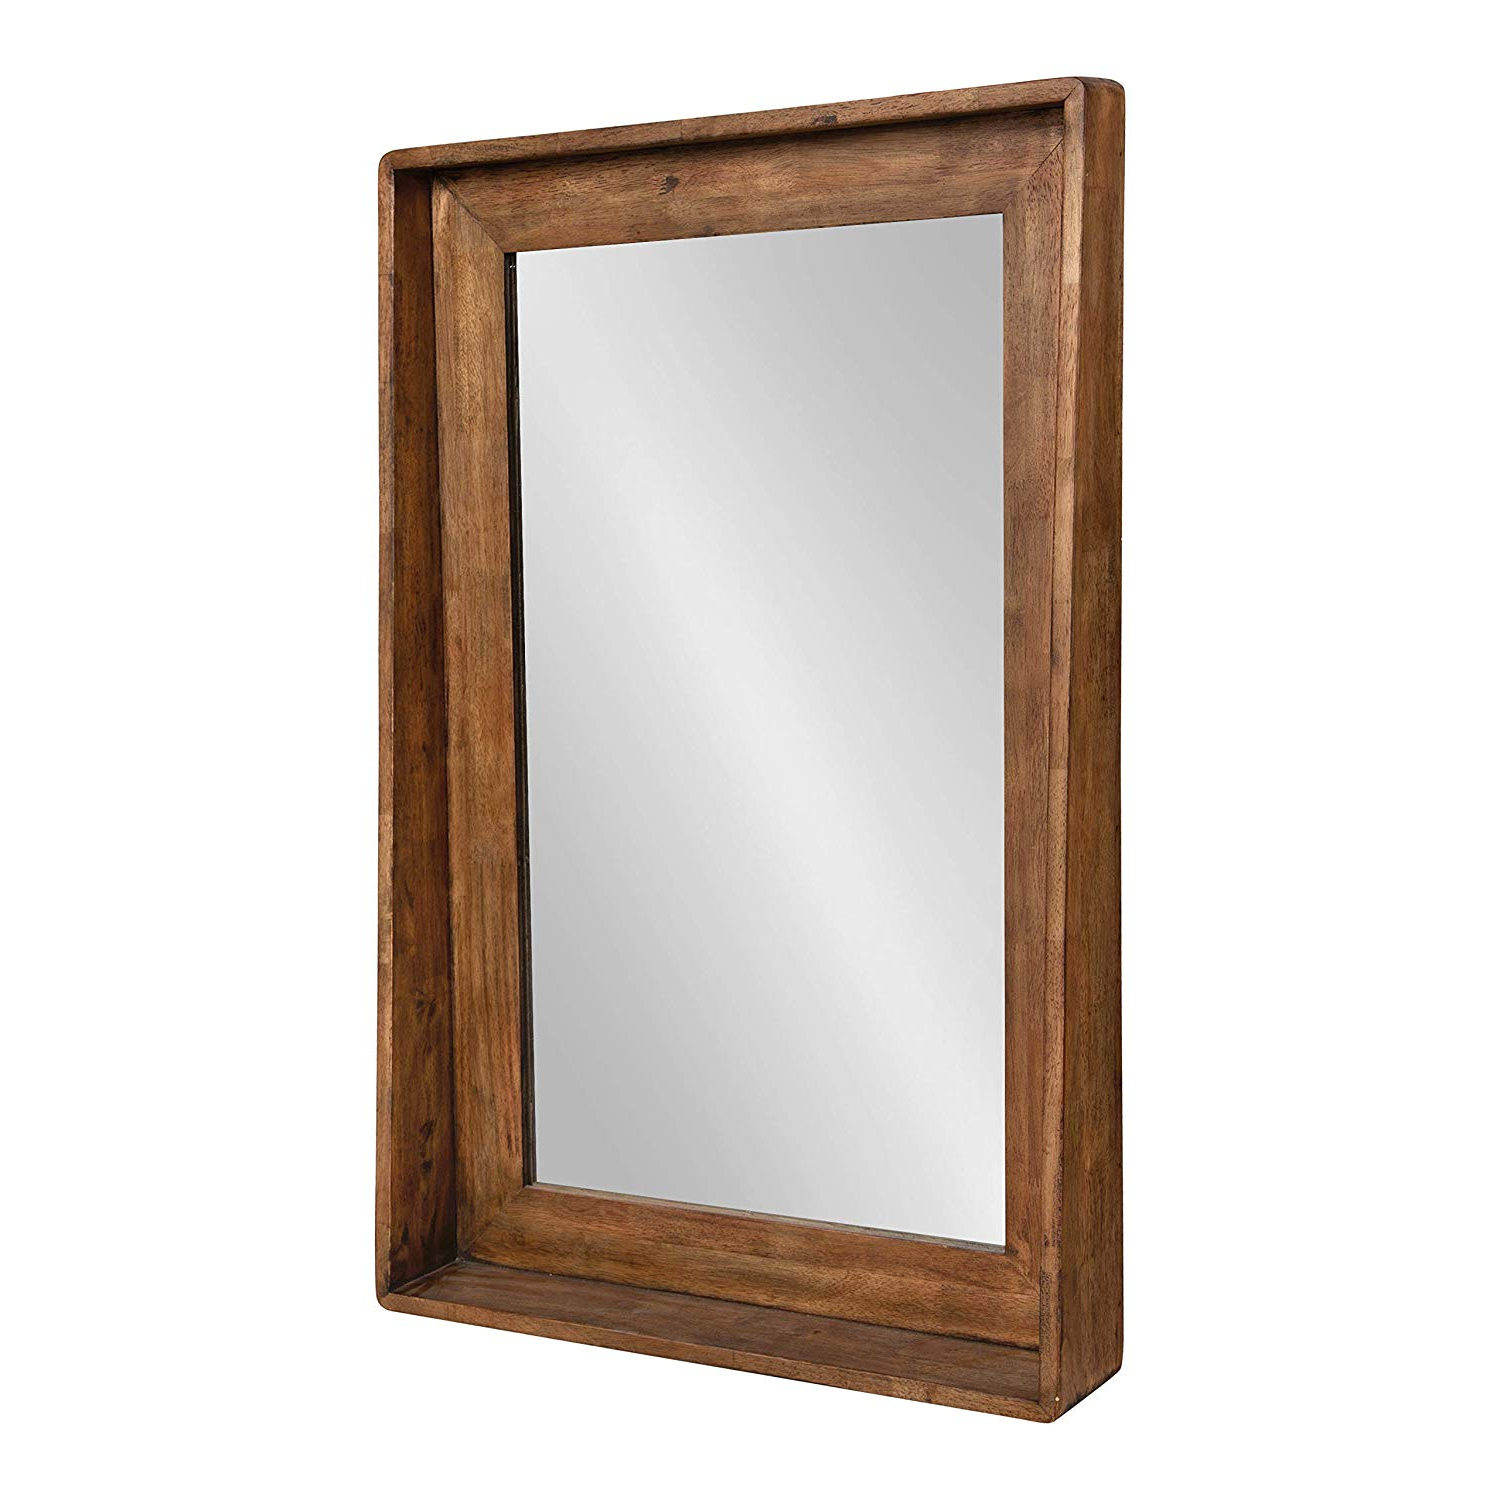 Famous Kate And Laurel Basking Vertical Wood Wall Mirror With Shelf, Rustic  Caramel Finish, 24 X 36 Within Wood Wall Mirrors (View 3 of 20)